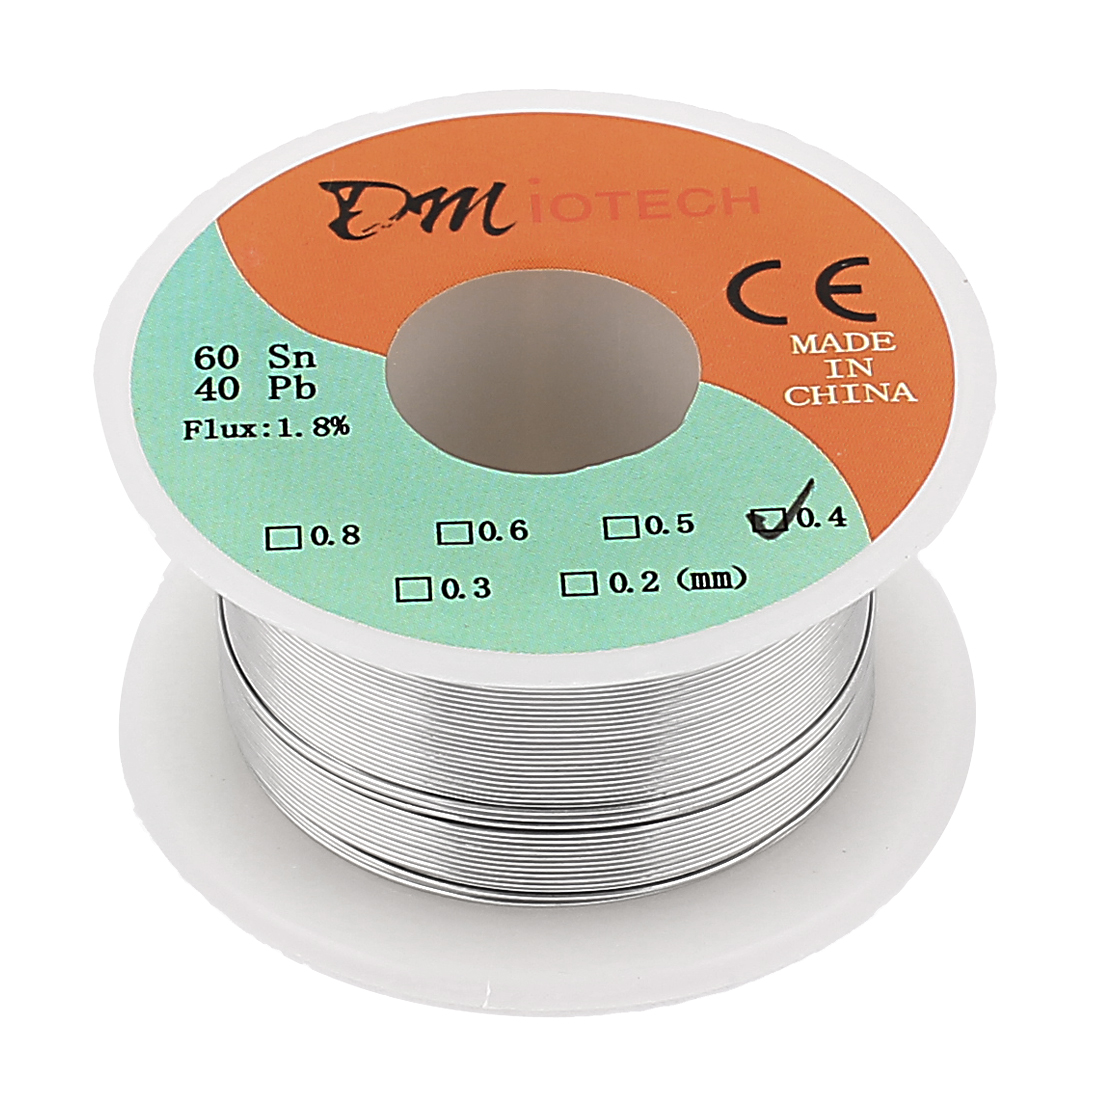 0.4mm Rosin Core Solder Tin Lead Solder Wire 60/40 for Electrical Soldering 35g